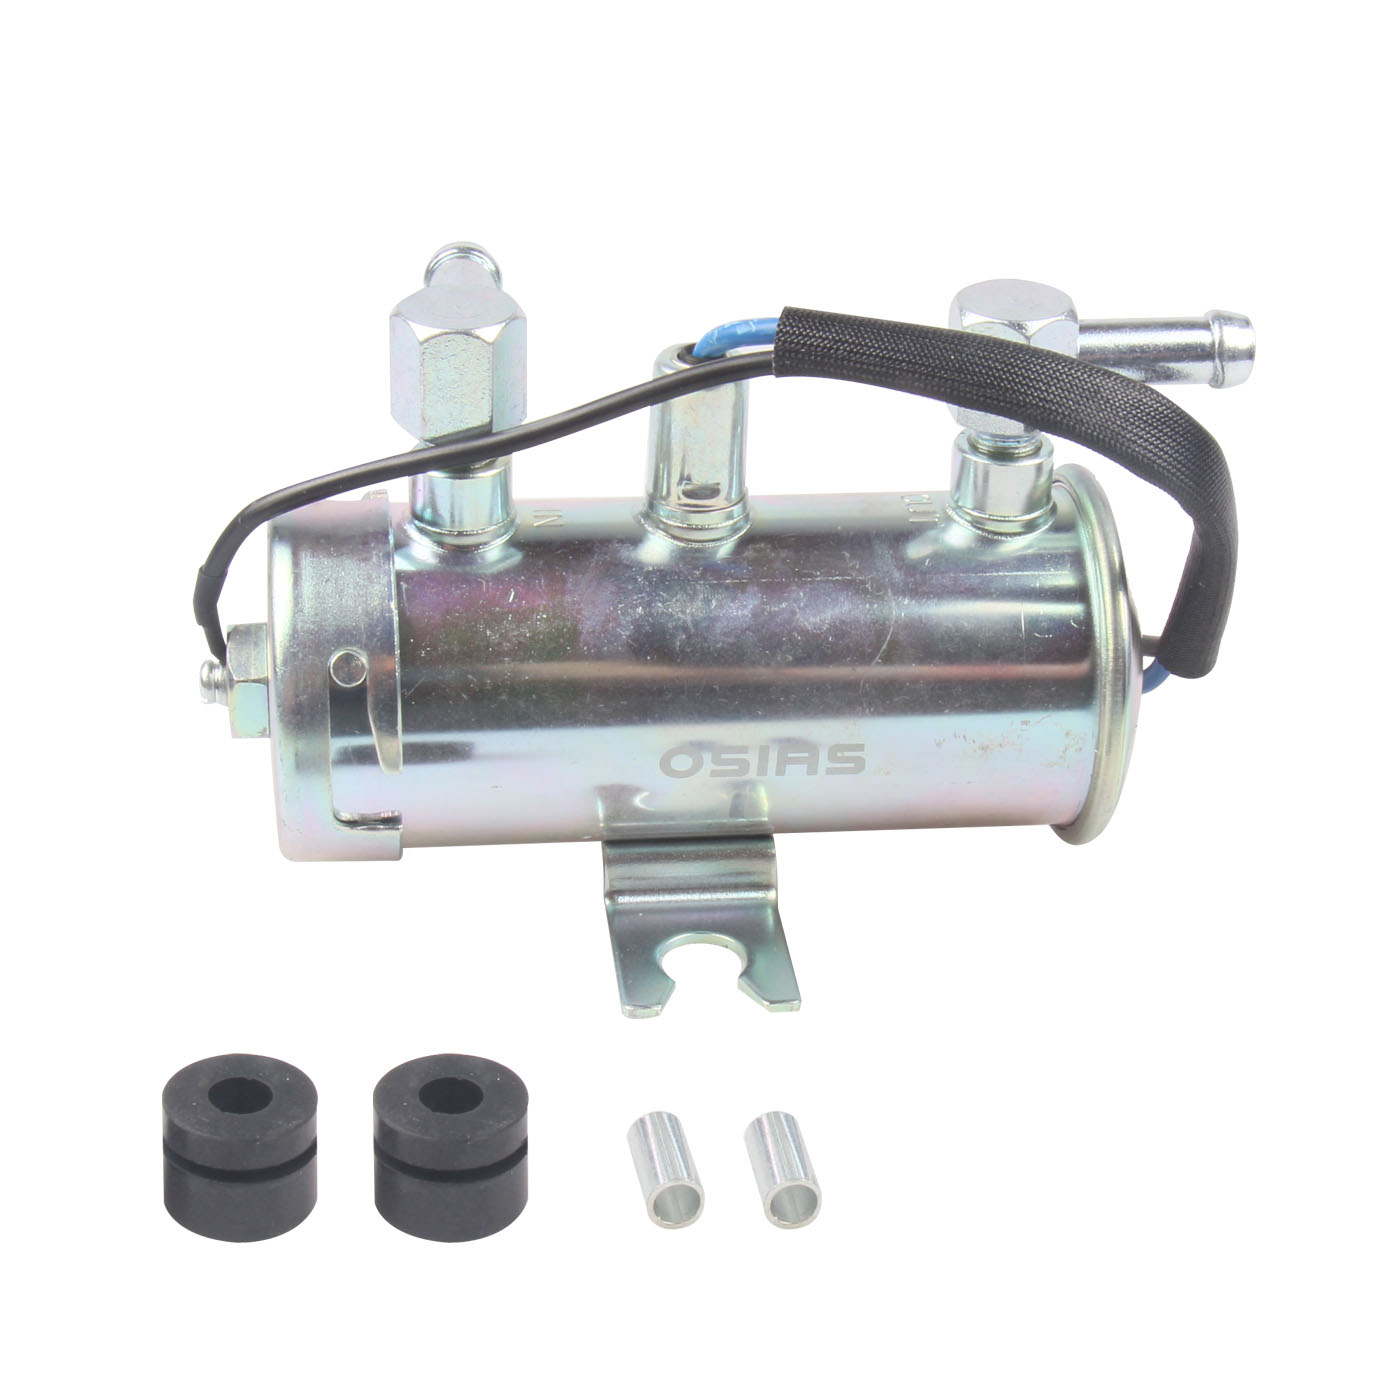 OSIAS 24V ELECTRIC UNIVERSAL PETROL DIESEL FUEL PUMP FACET SILVER STYLE TRACTOR BOAT